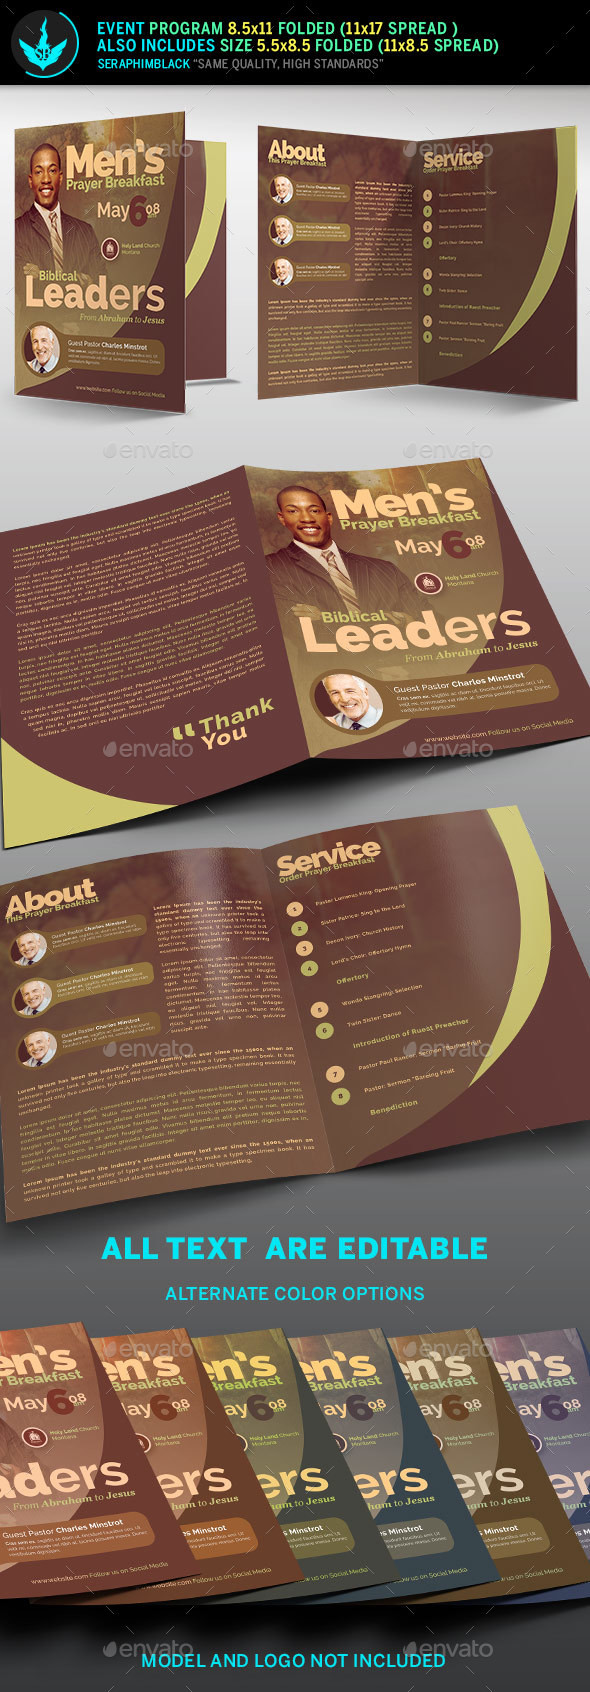 Prayer Breakfast Flyer Template